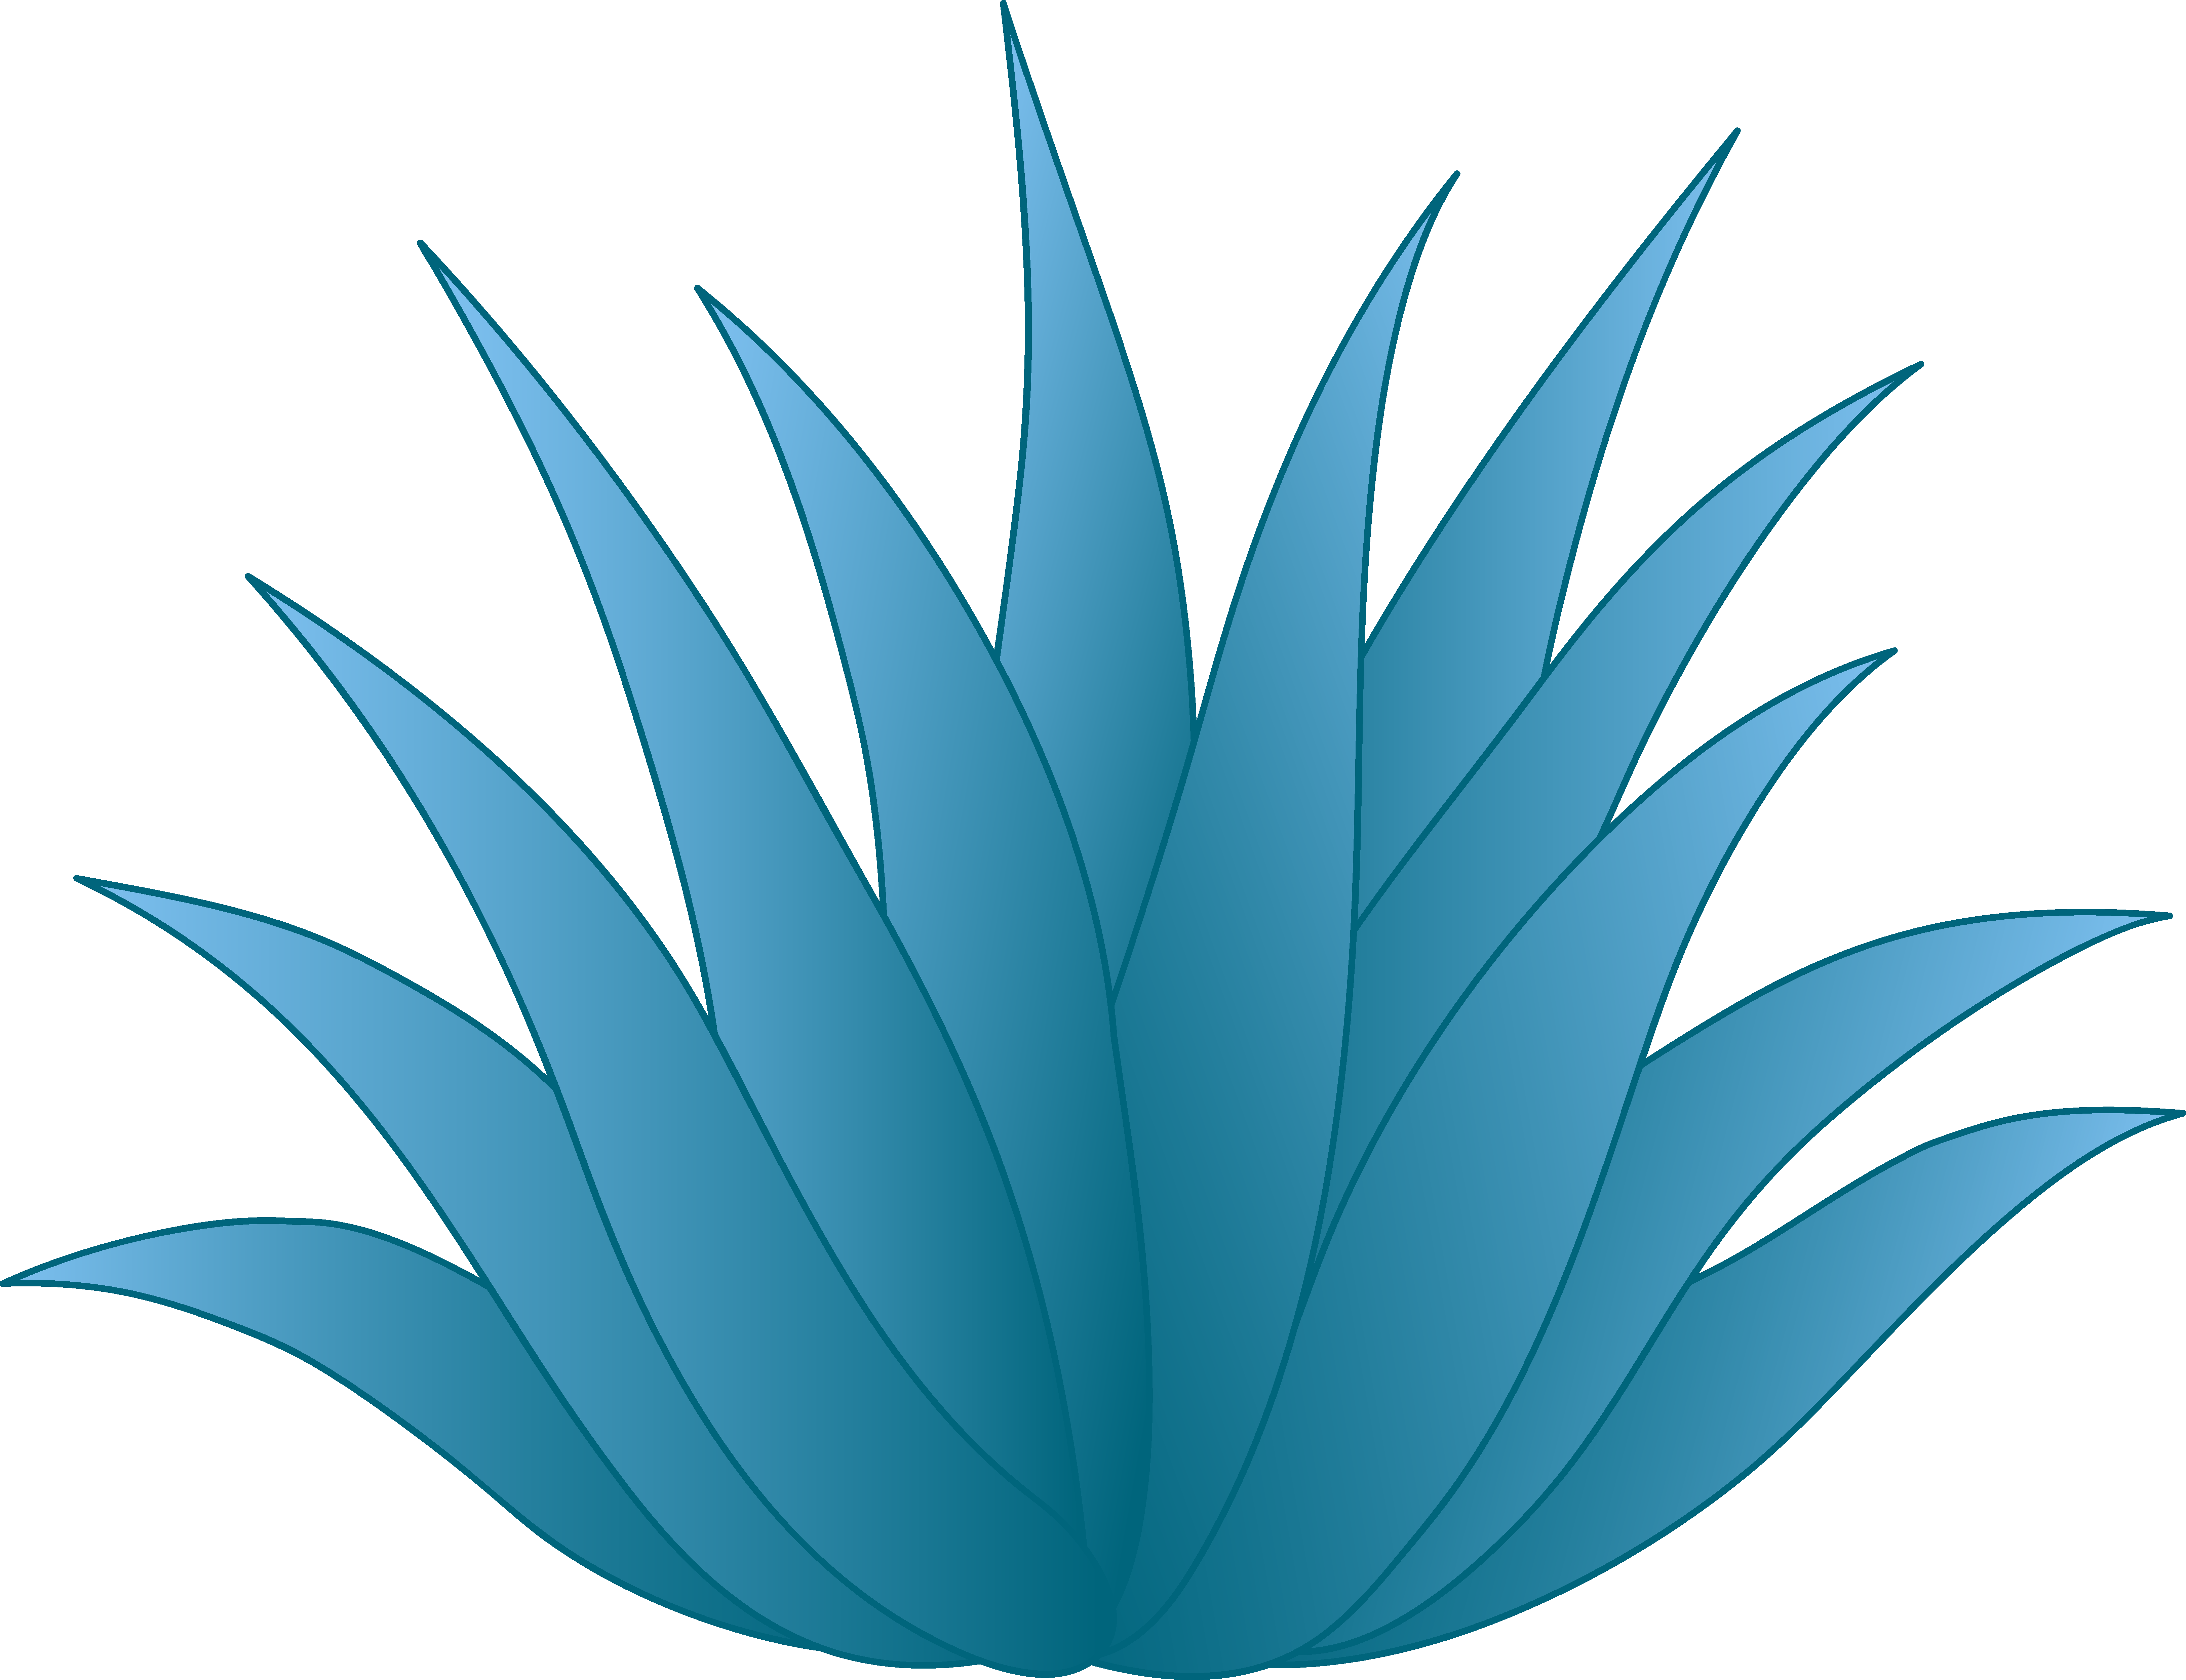 Agave plant clipart.